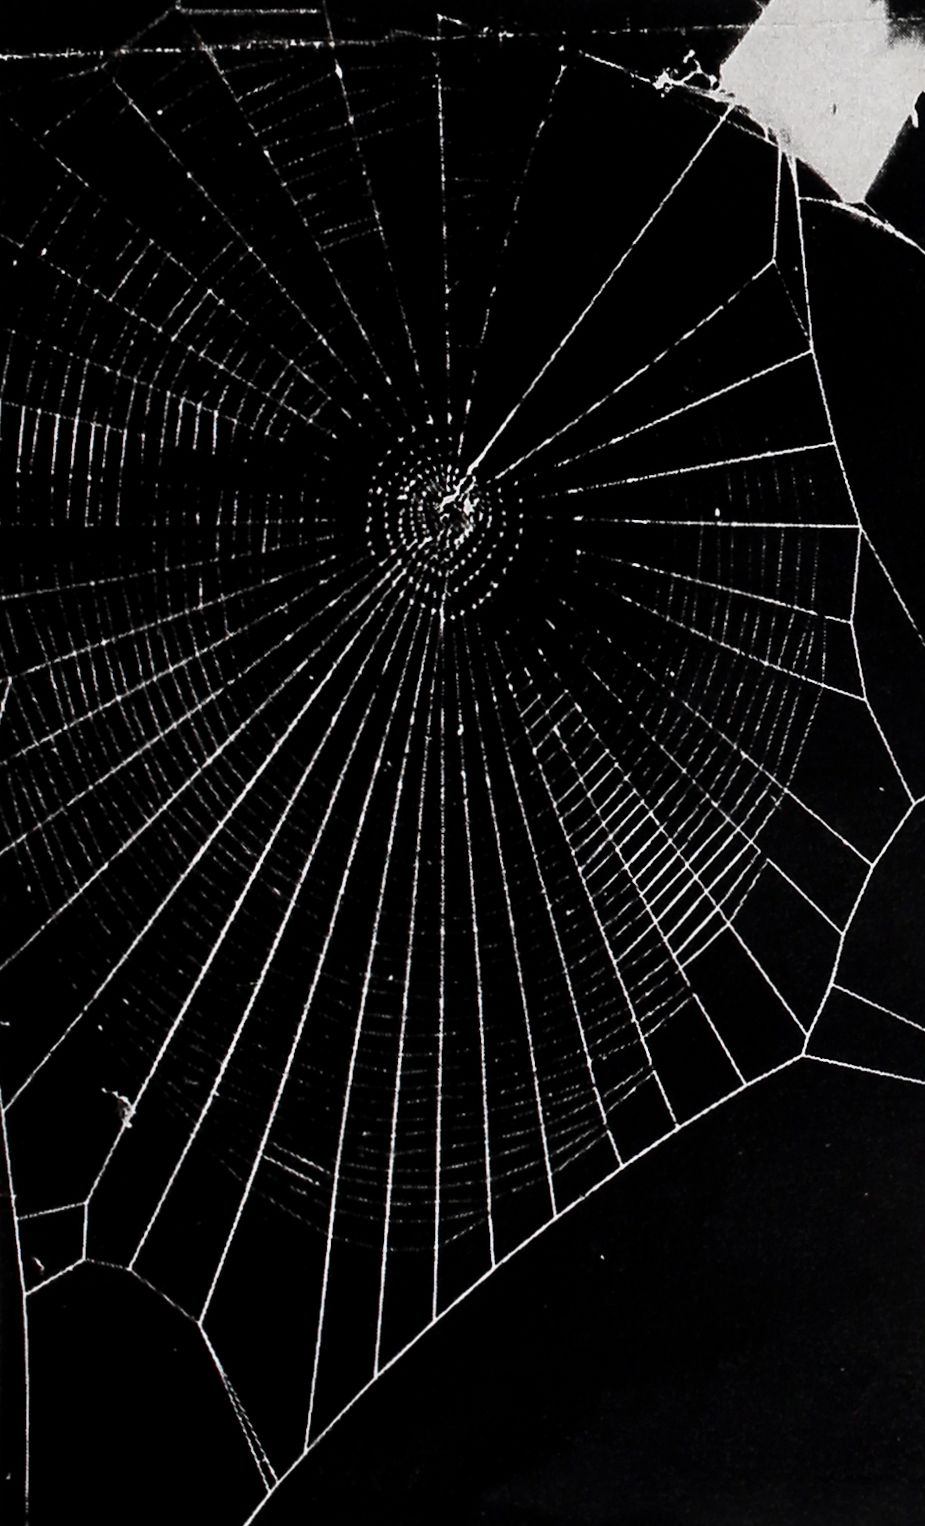 1954-LIFE-Spiders-Spin-11